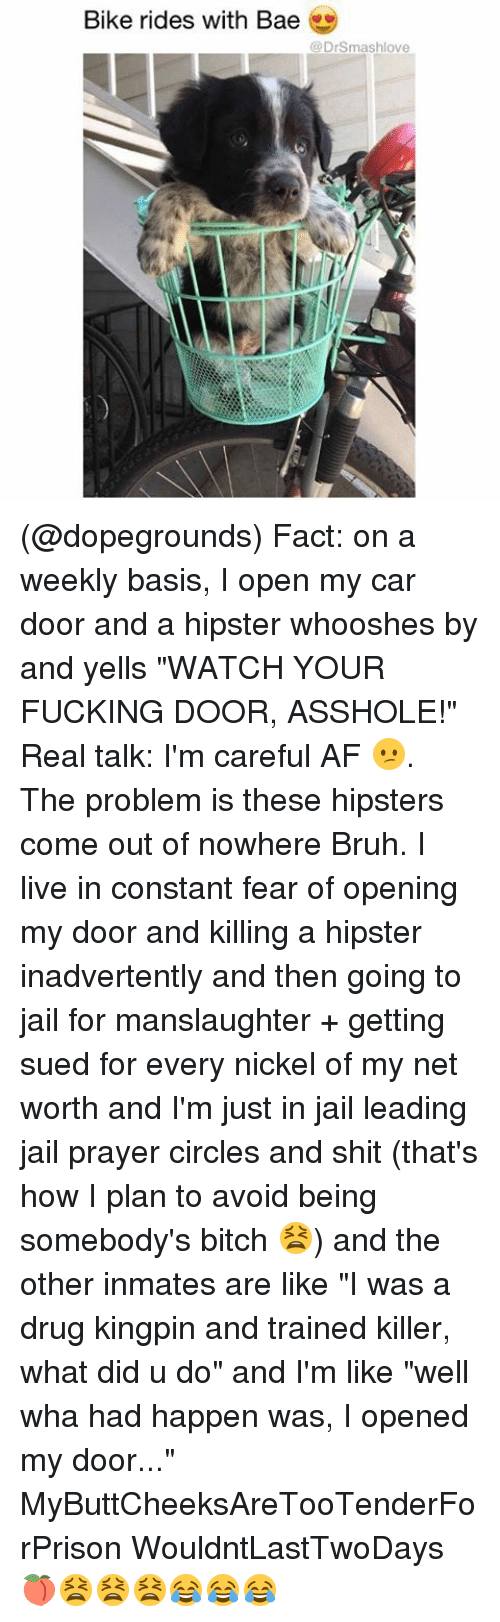 """Af, Bae, and Bitch: Bike rides with Bae  @Dr Smash love (@dopegrounds) Fact: on a weekly basis, I open my car door and a hipster whooshes by and yells """"WATCH YOUR FUCKING DOOR, ASSHOLE!"""" Real talk: I'm careful AF 😕. The problem is these hipsters come out of nowhere Bruh. I live in constant fear of opening my door and killing a hipster inadvertently and then going to jail for manslaughter + getting sued for every nickel of my net worth and I'm just in jail leading jail prayer circles and shit (that's how I plan to avoid being somebody's bitch 😫) and the other inmates are like """"I was a drug kingpin and trained killer, what did u do"""" and I'm like """"well wha had happen was, I opened my door..."""" MyButtCheeksAreTooTenderForPrison WouldntLastTwoDays 🍑😫😫😫😂😂😂"""